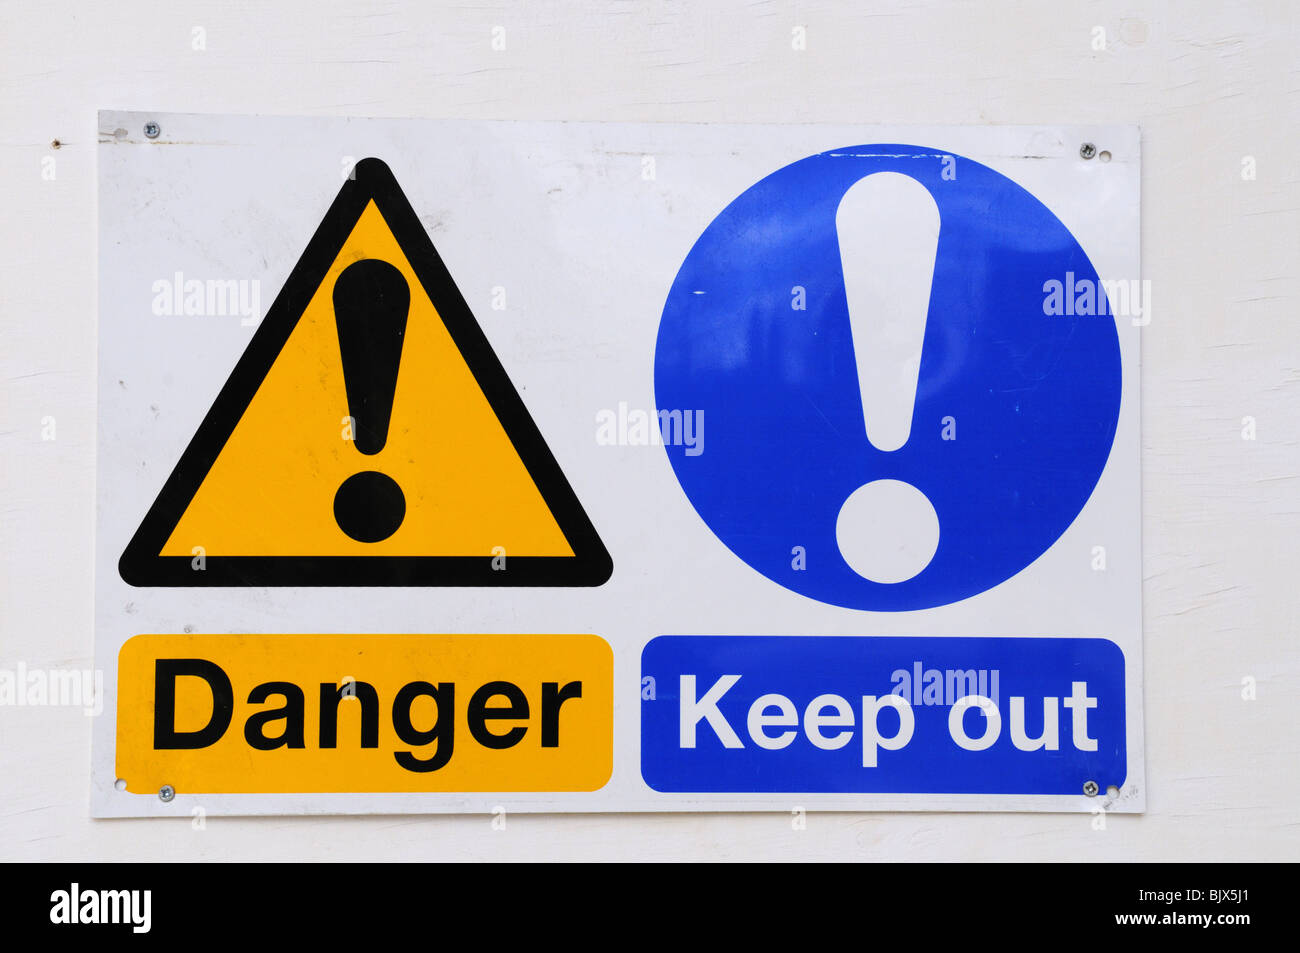 Danger Keep Out warning signs on a building site - Stock Image